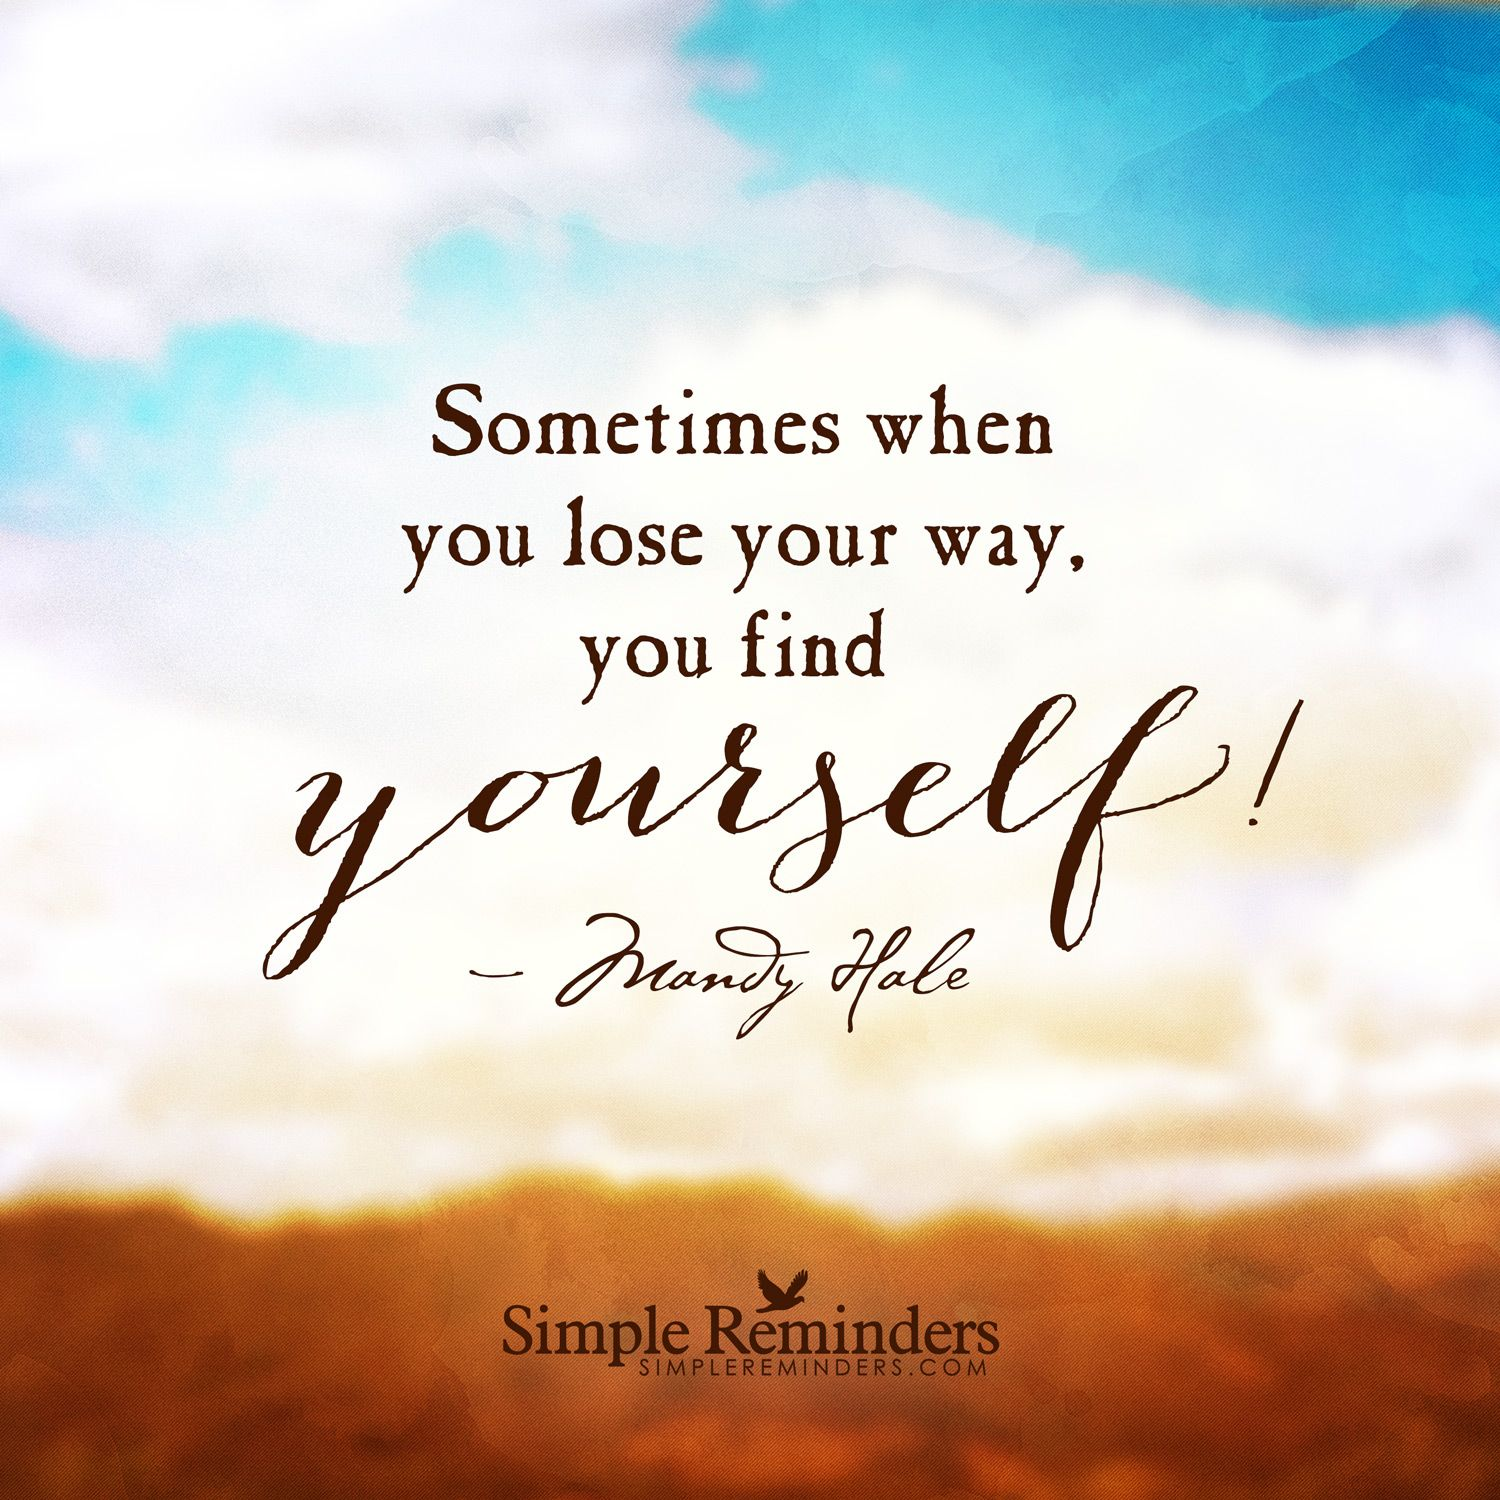 Simple Way Of Life Quotes: Sometimes When You Lose Your Way, You Find Yourself